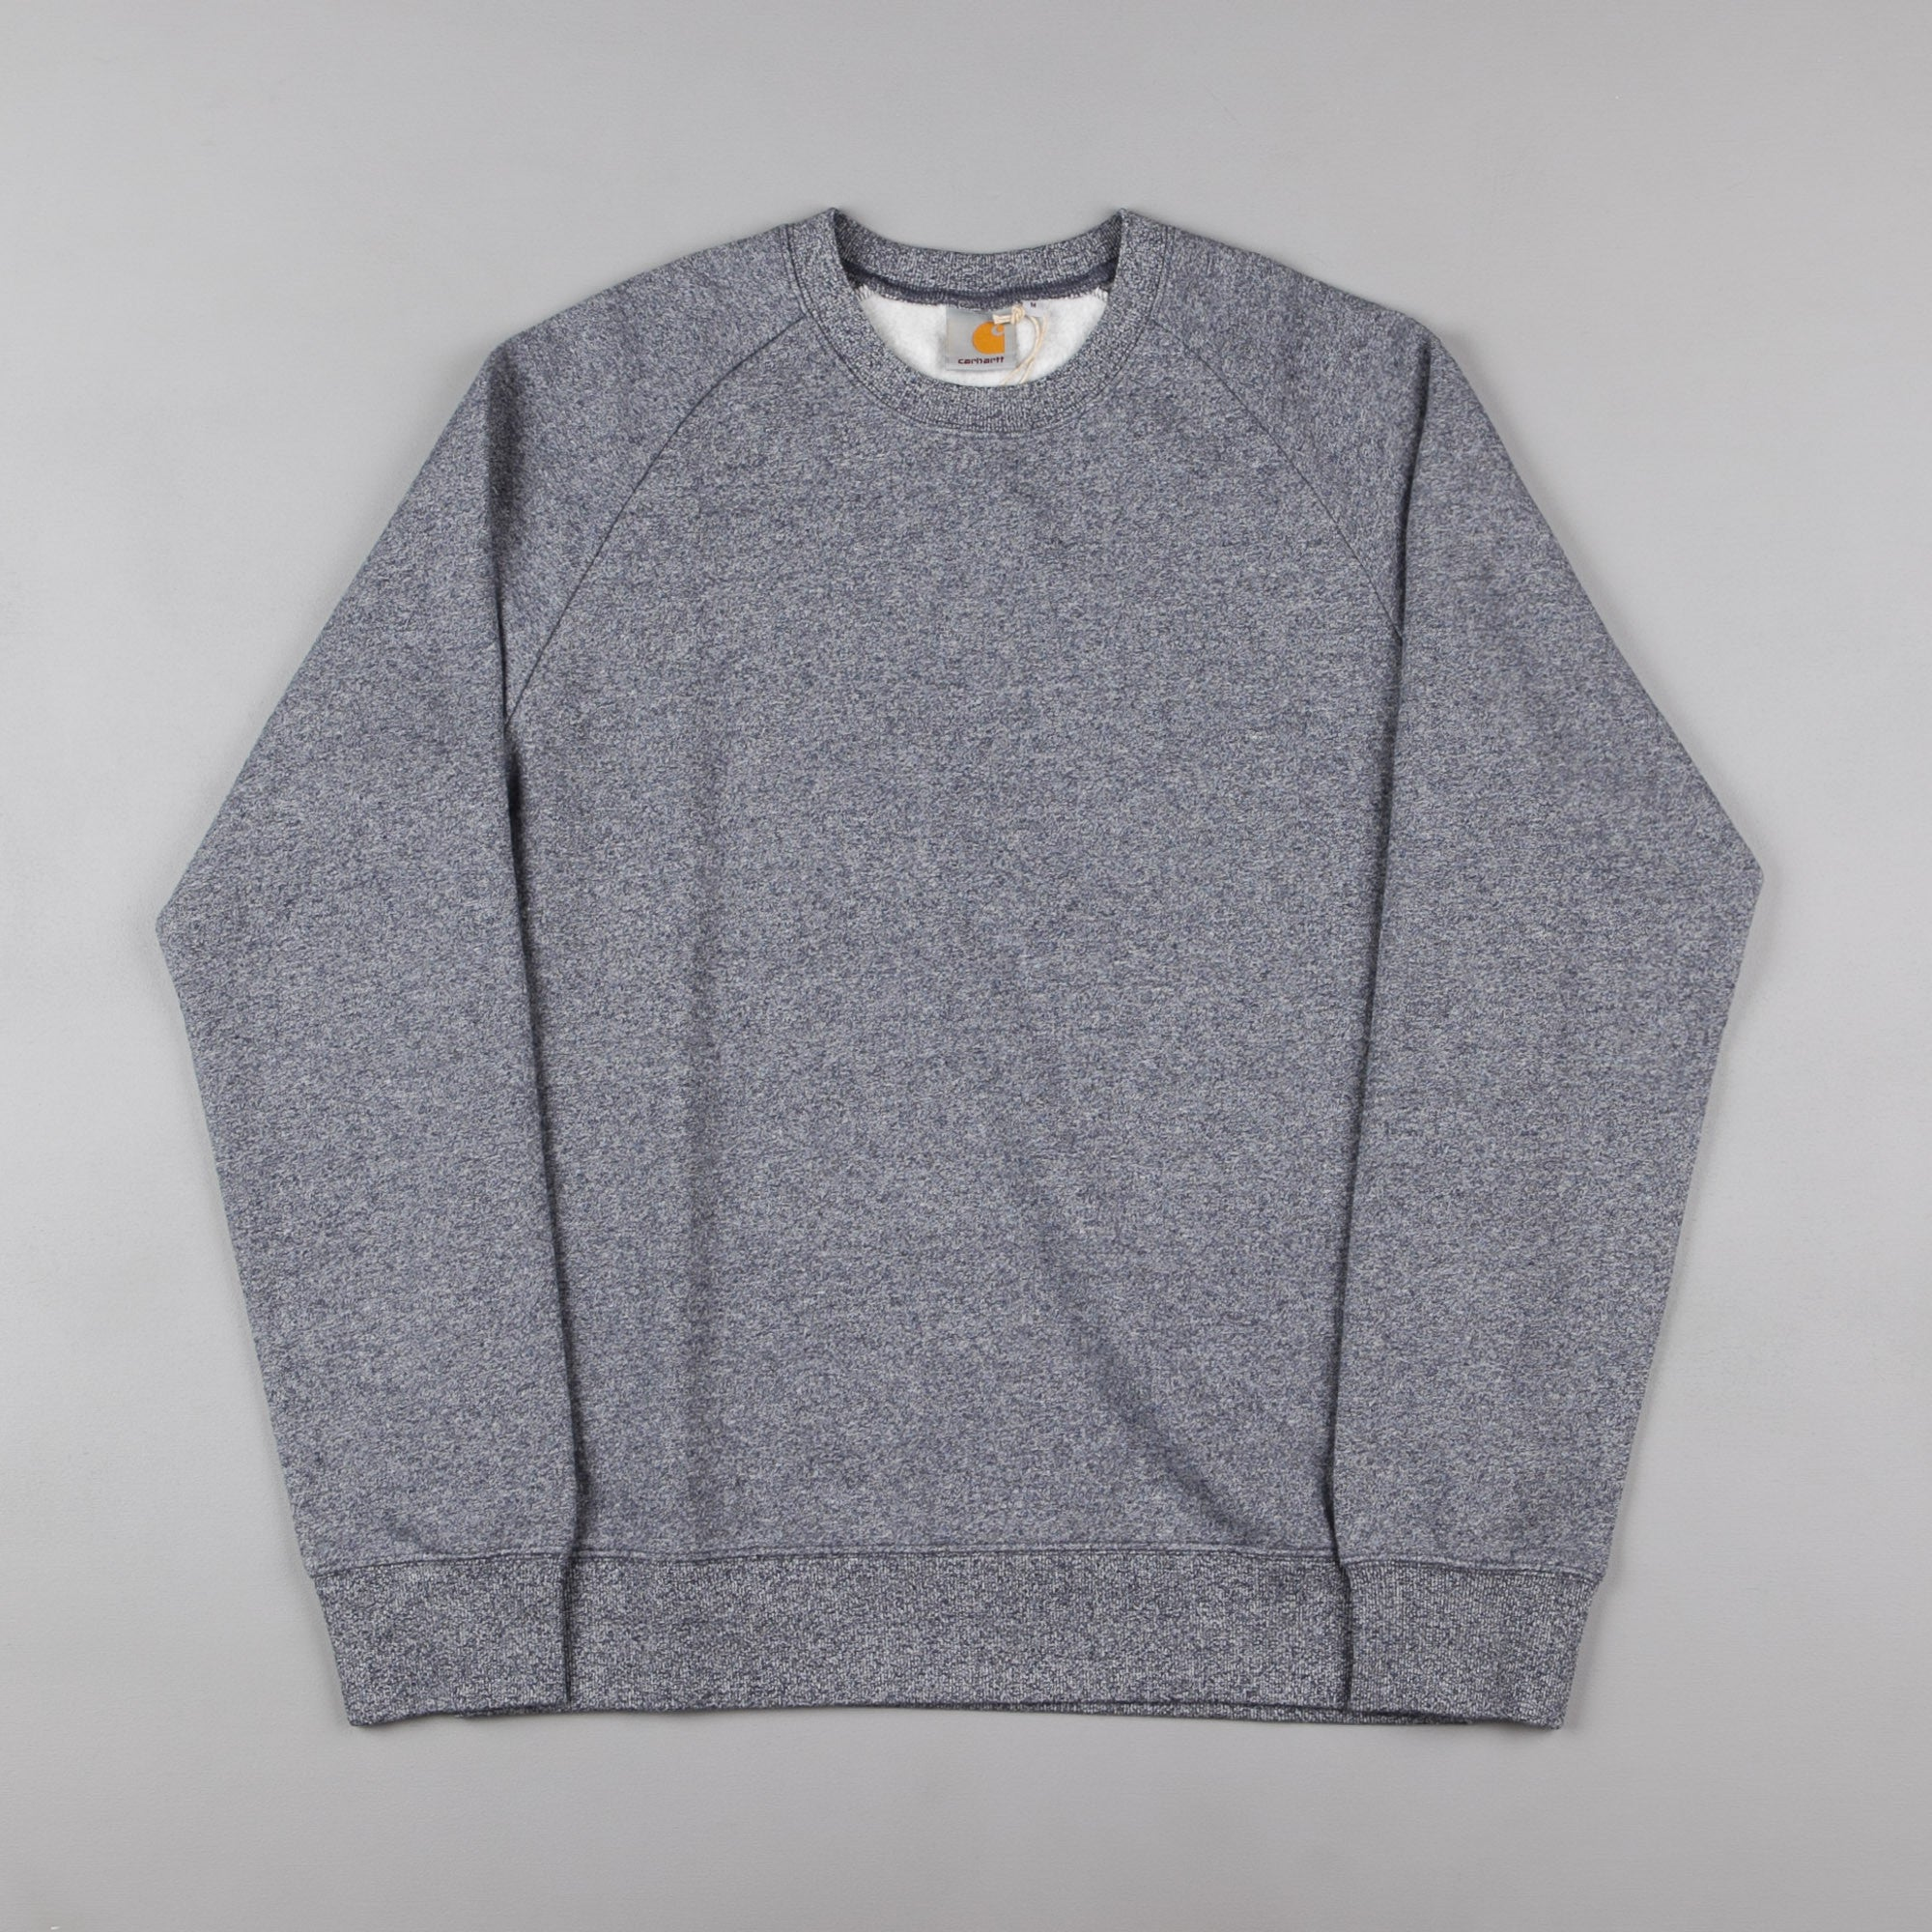 Carhartt Holbrook Sweatshirt - Navy Noise Heather